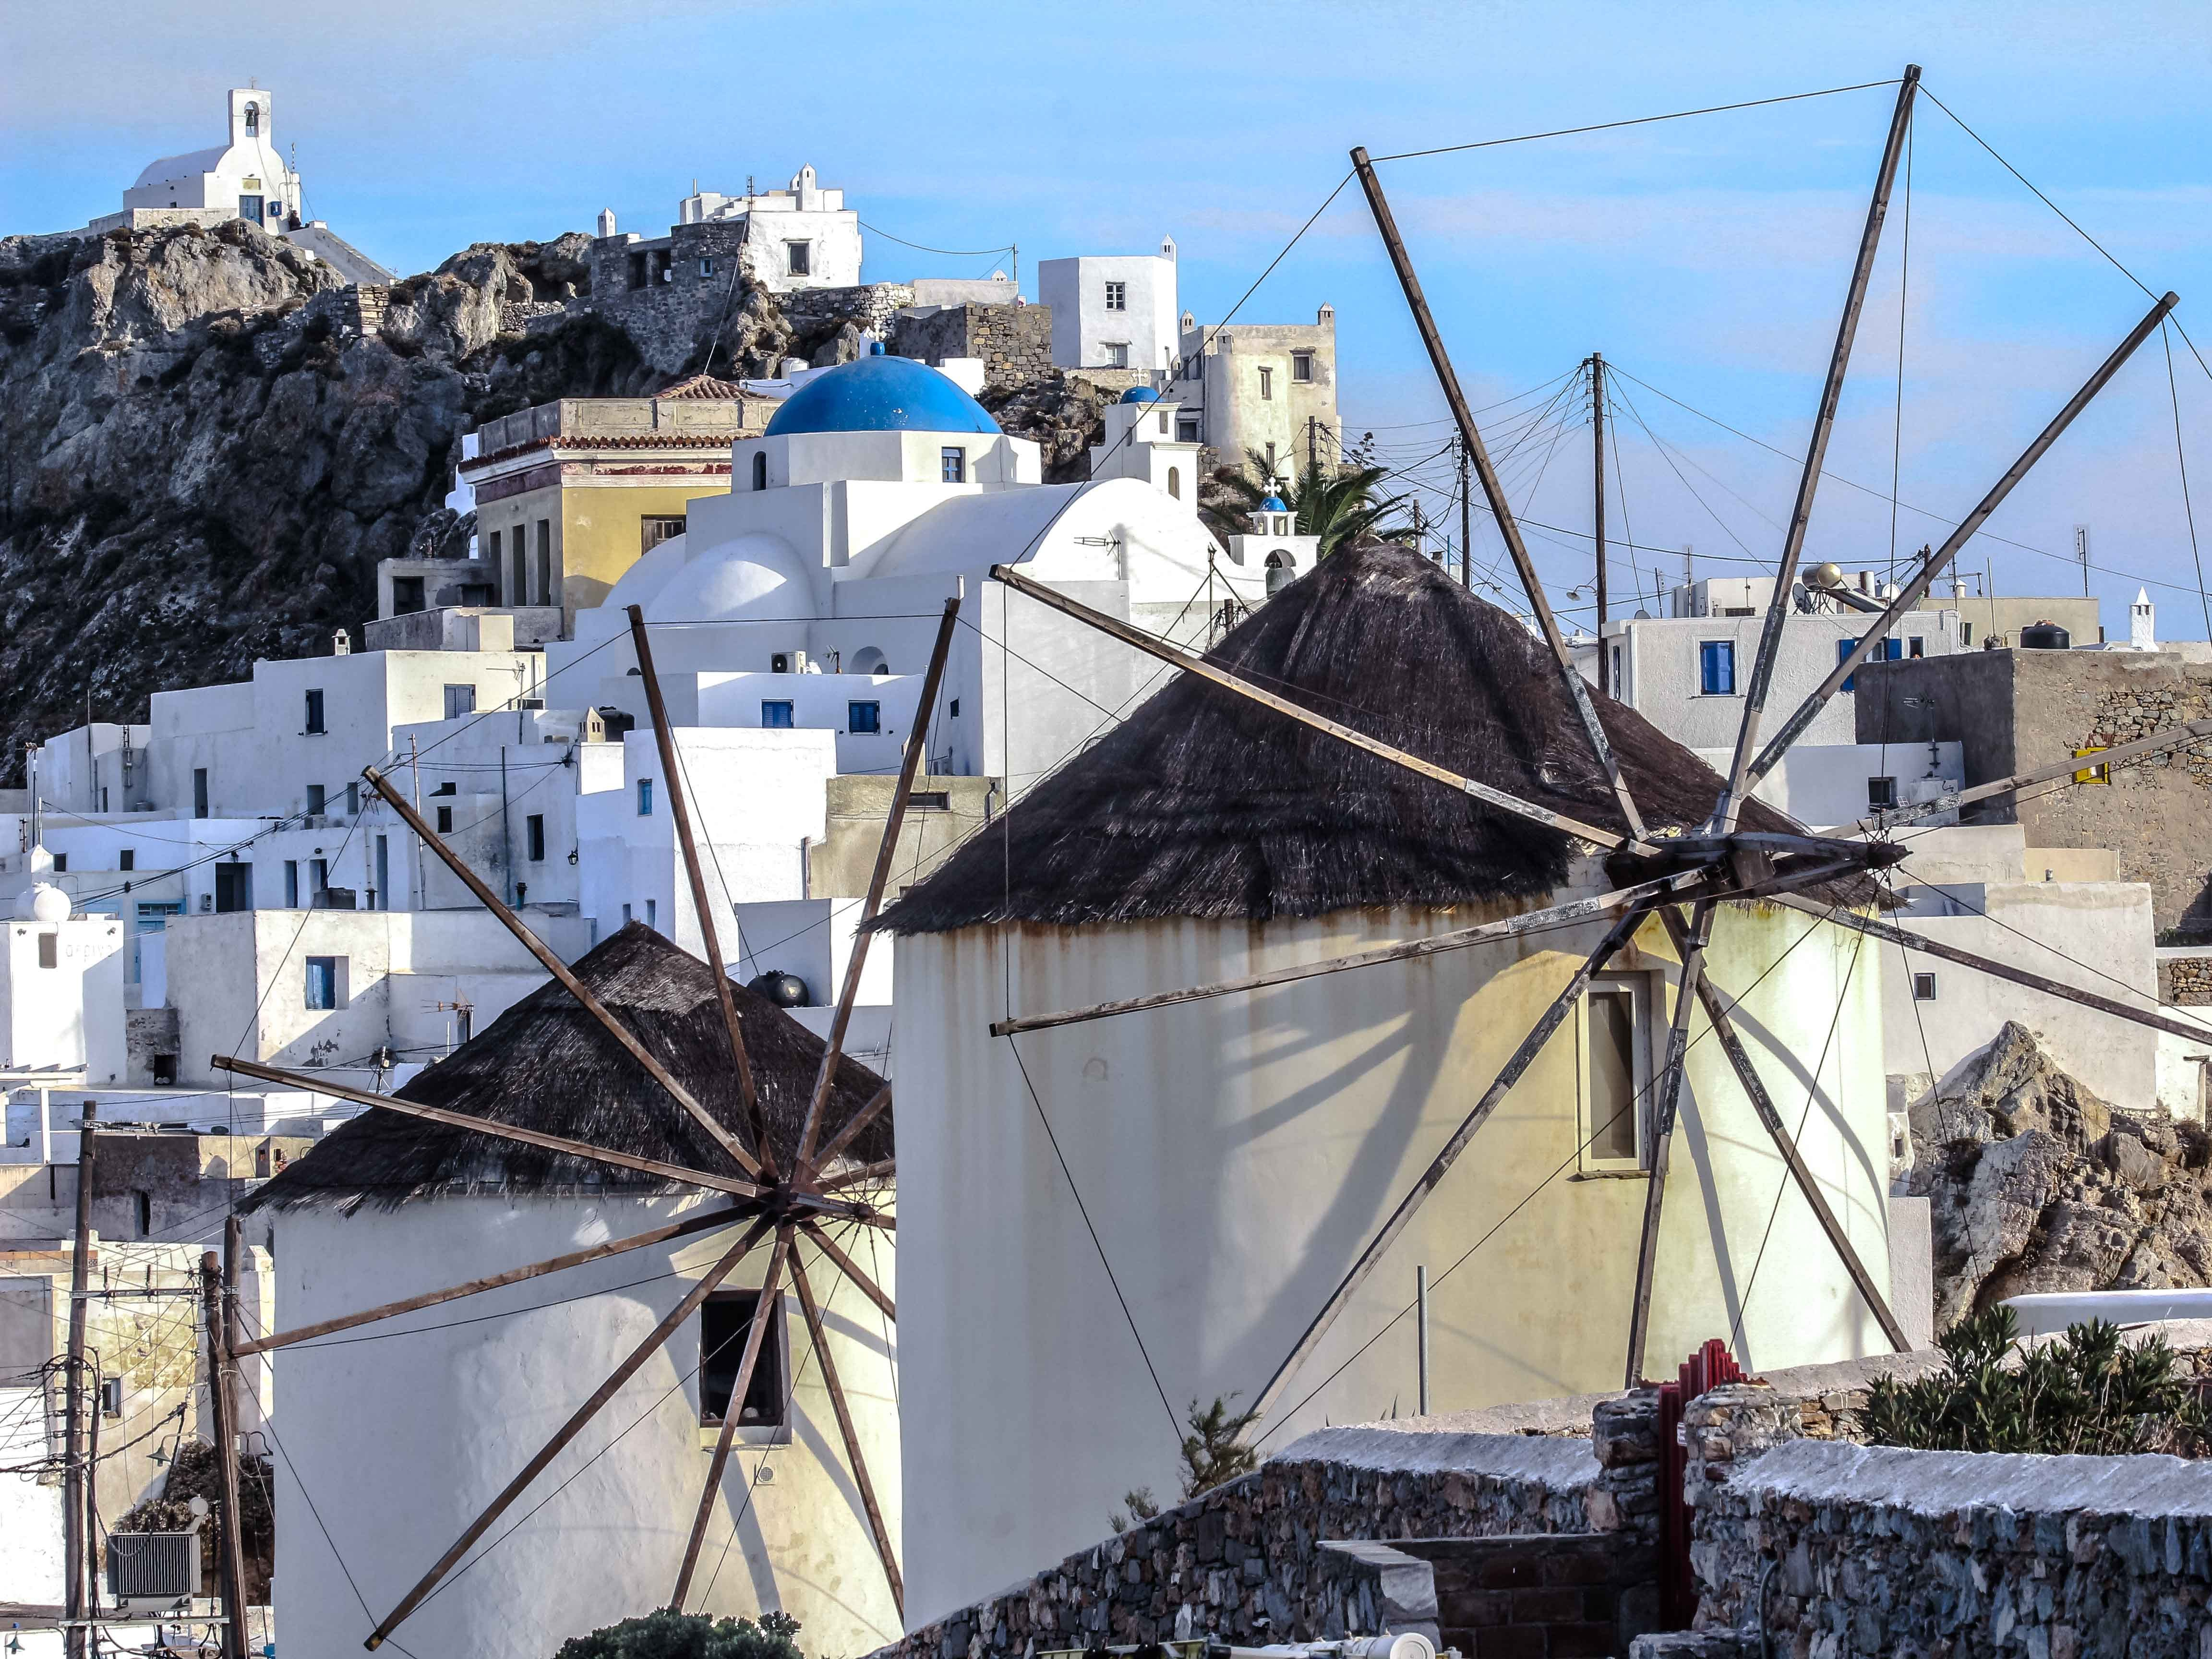 There are over 600 windmills throughout the Cyclades. On Serifos, Chora has three prominent windmills lined up on the edge of the town center.